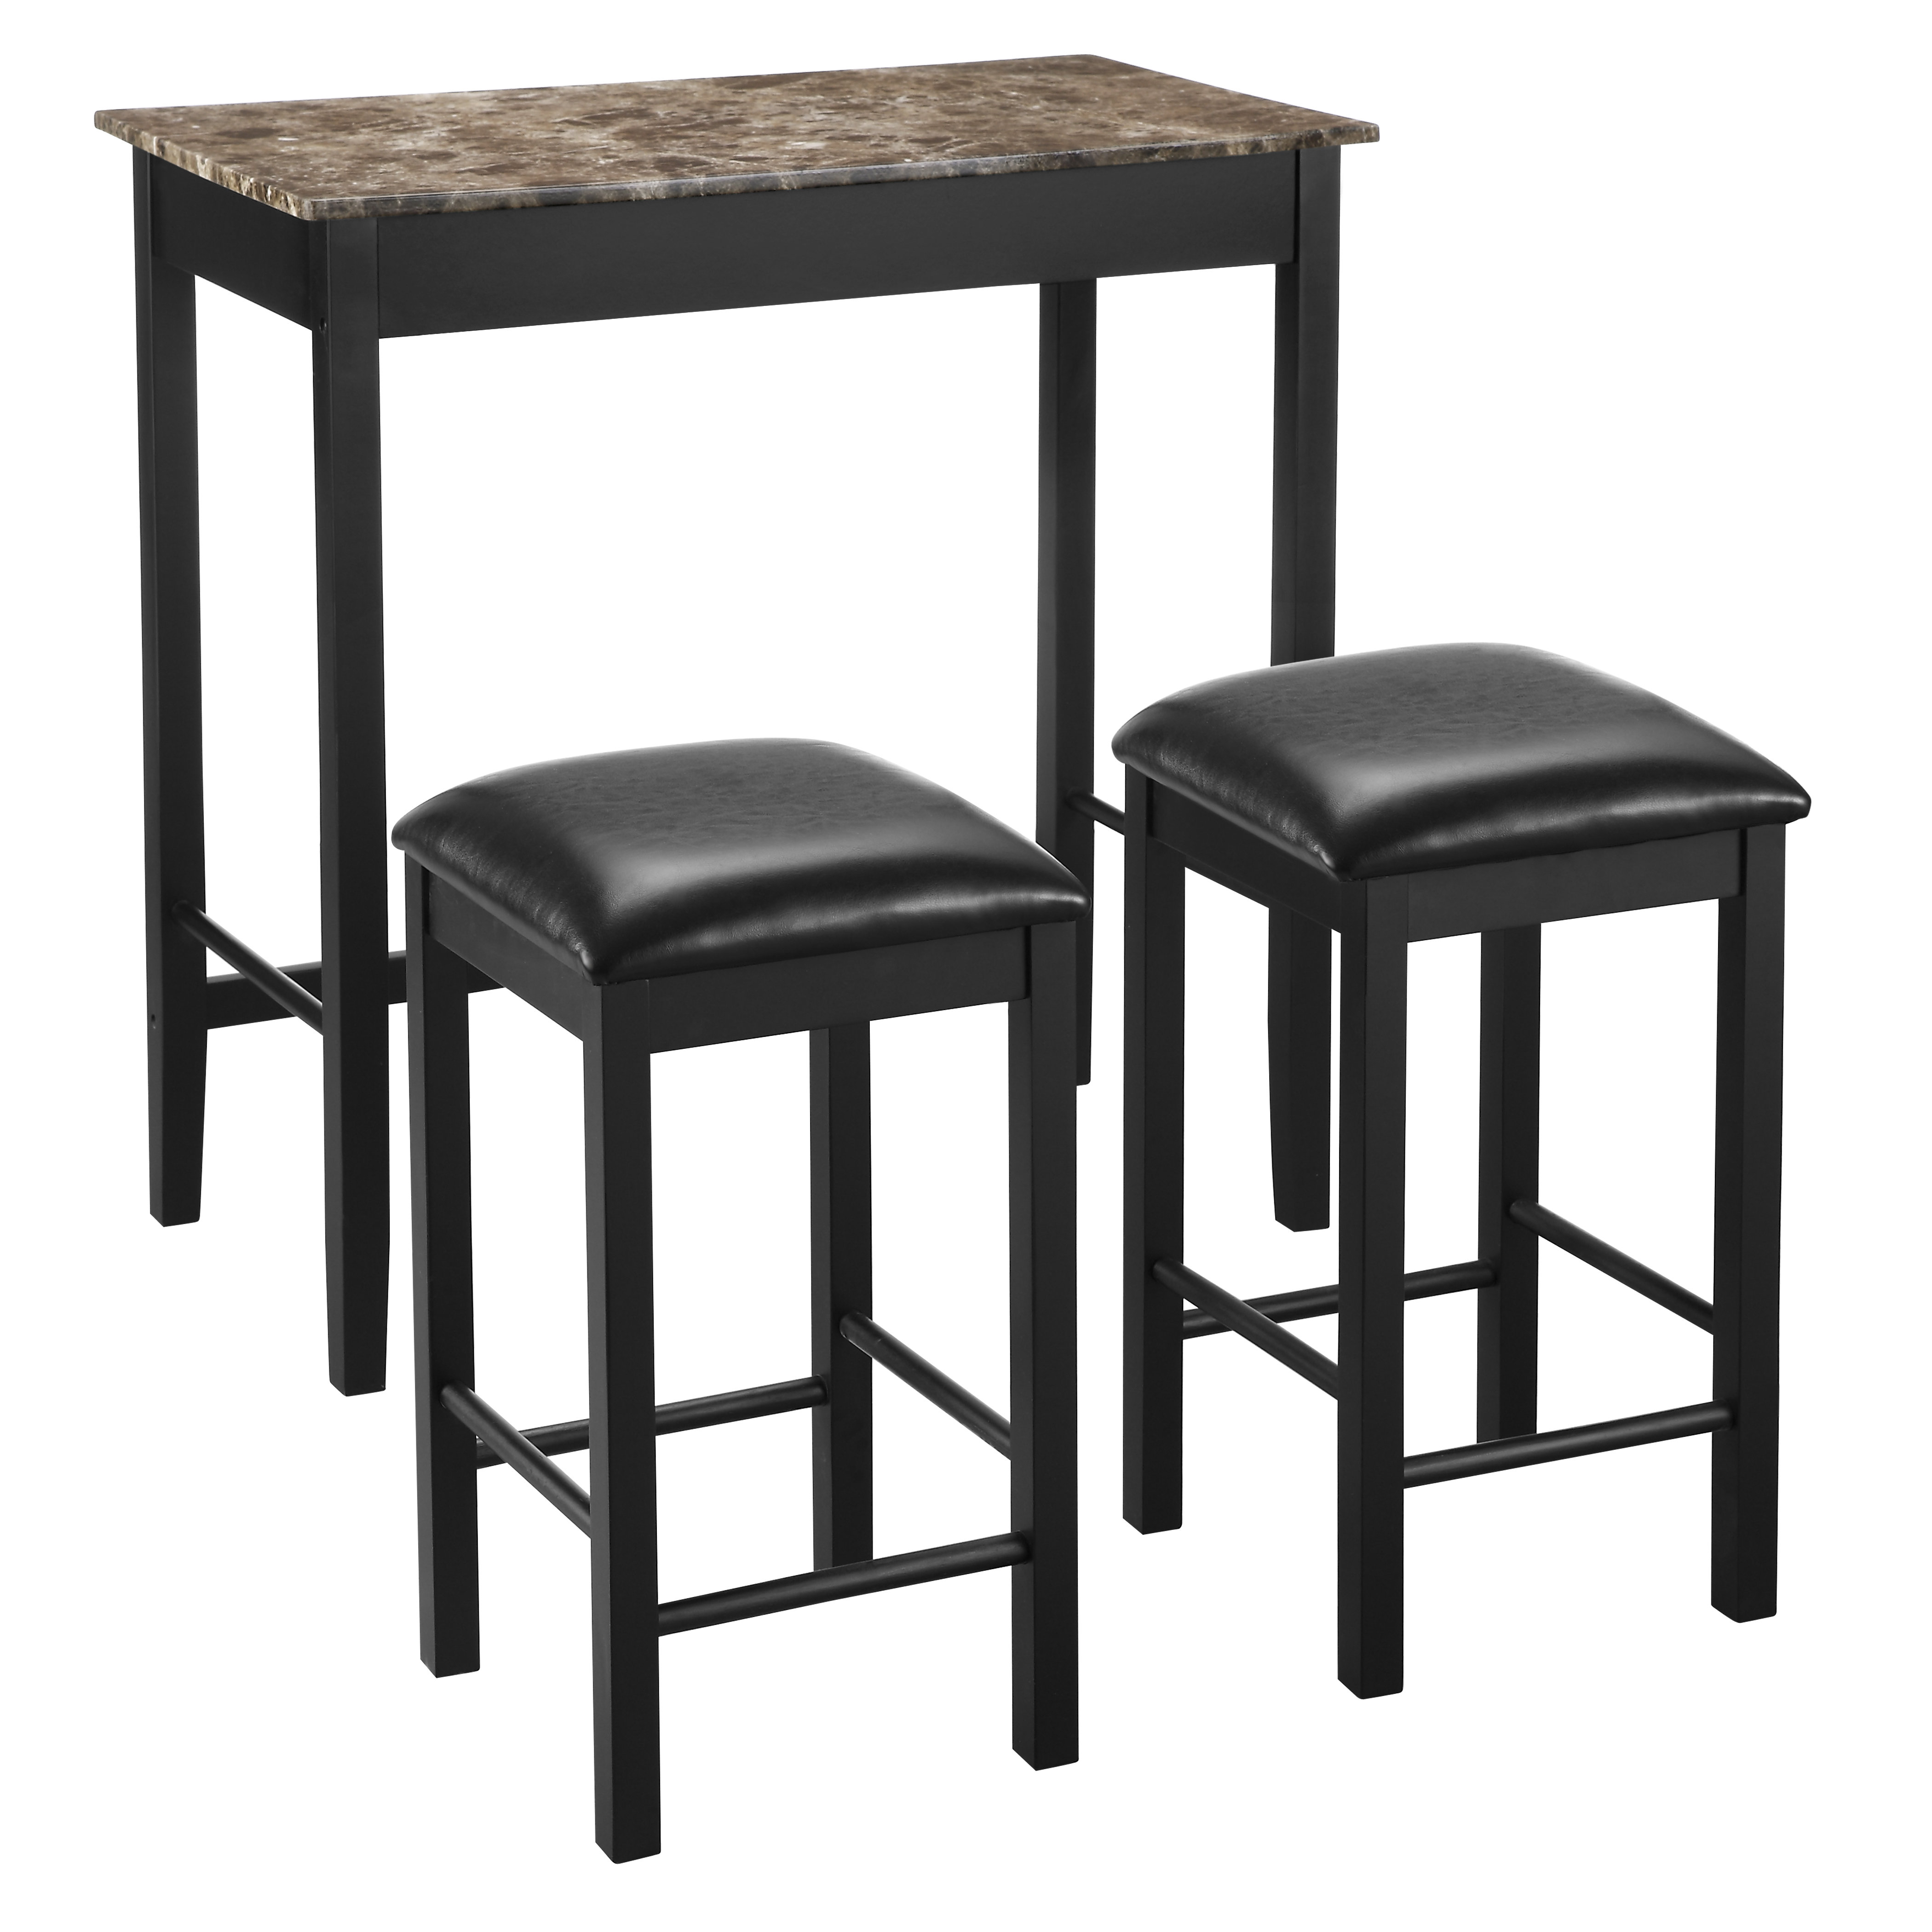 Nutter 3 Piece Dining Sets Regarding 2020 Nutter 3 Piece Dining Set & Reviews (View 17 of 25)